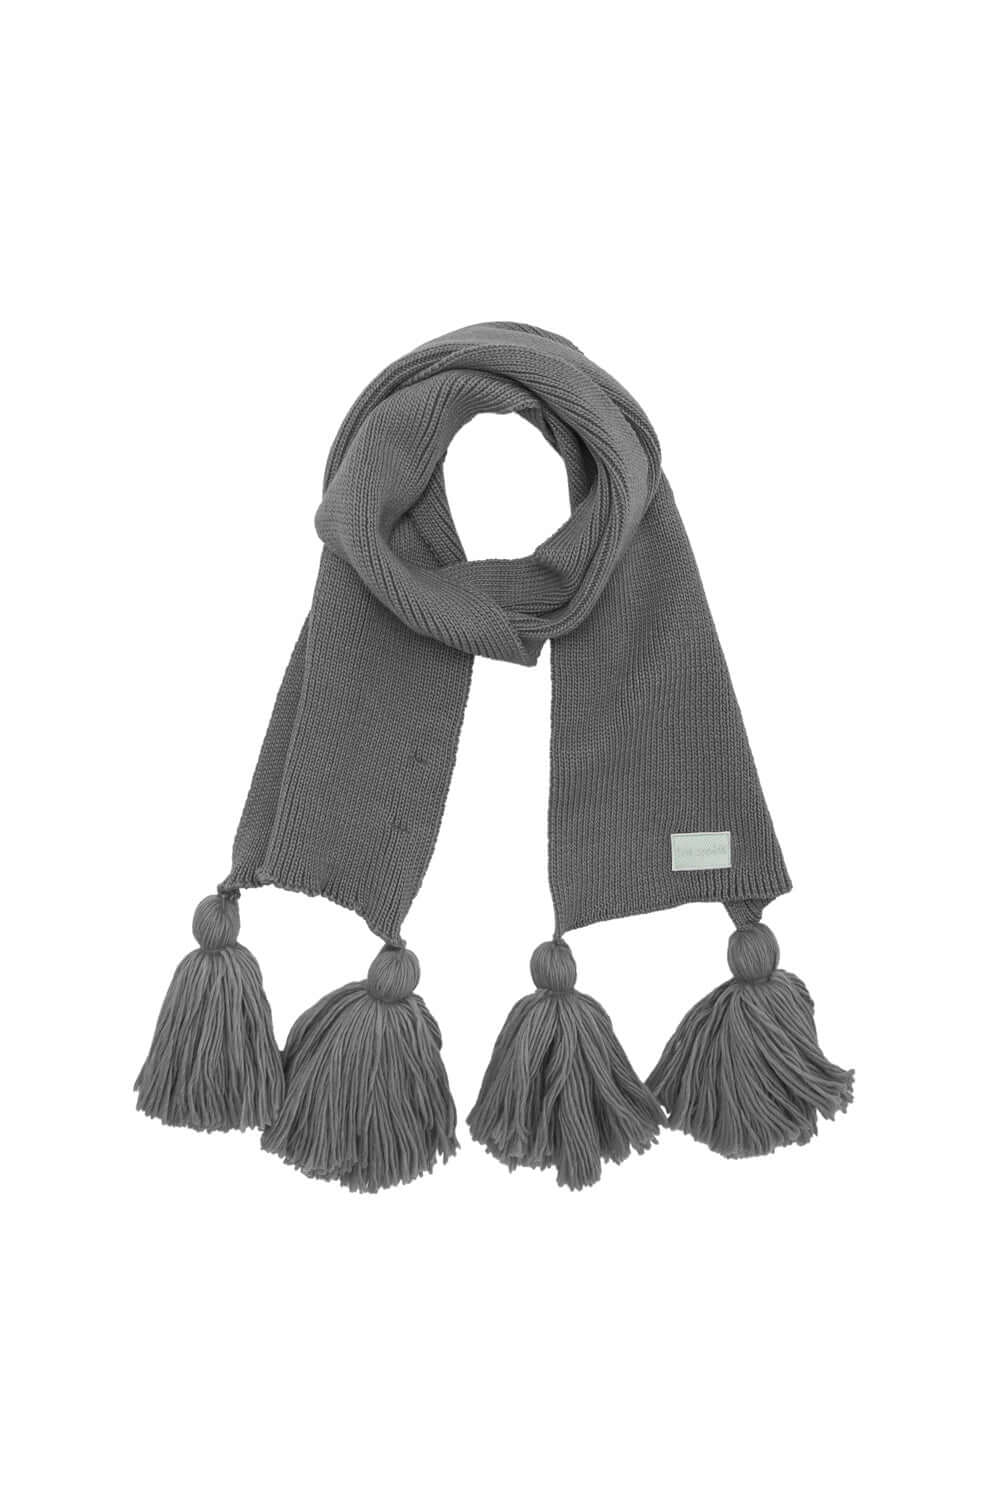 Ellis scarf in grey knit